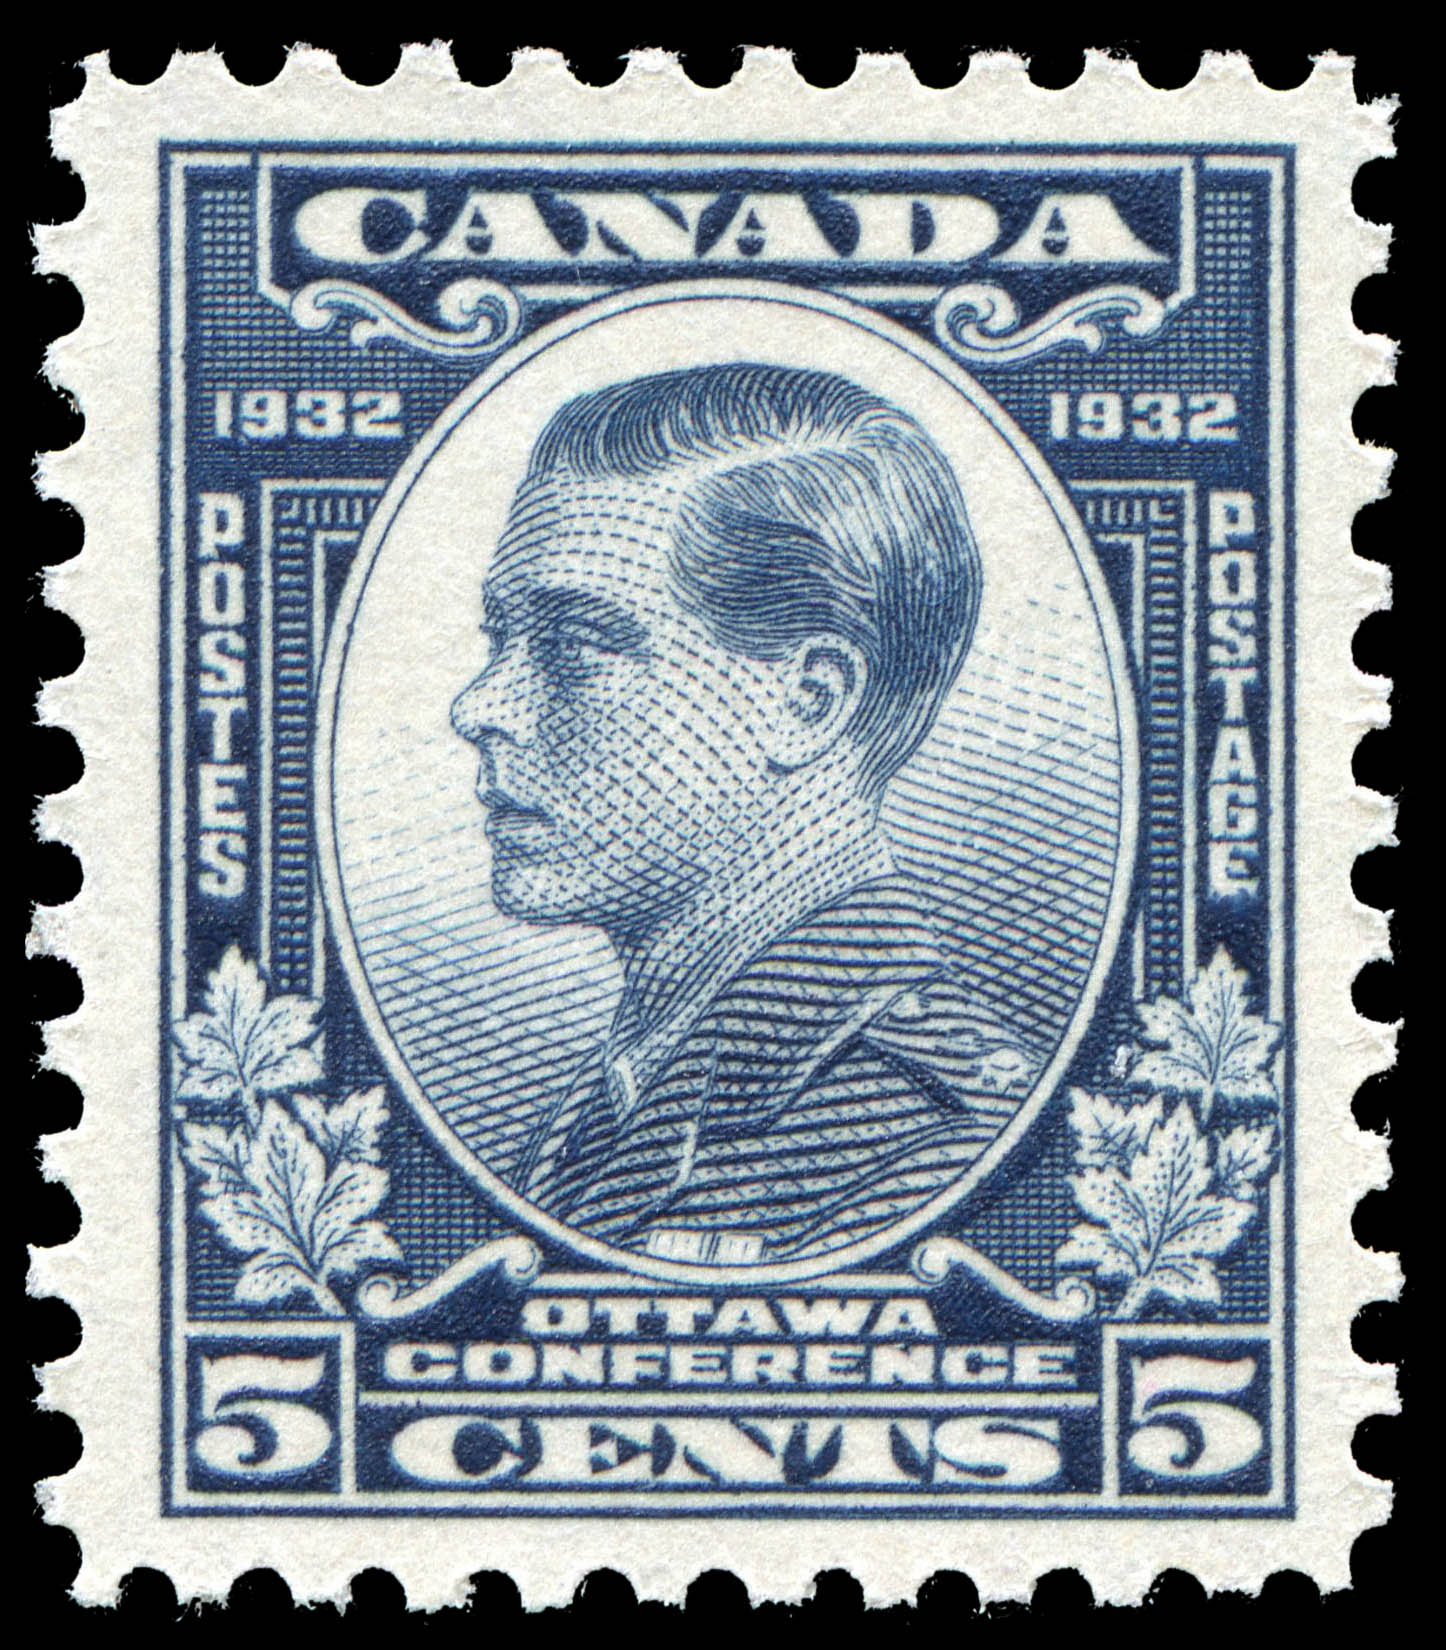 Prince of Wales Canada Postage Stamp